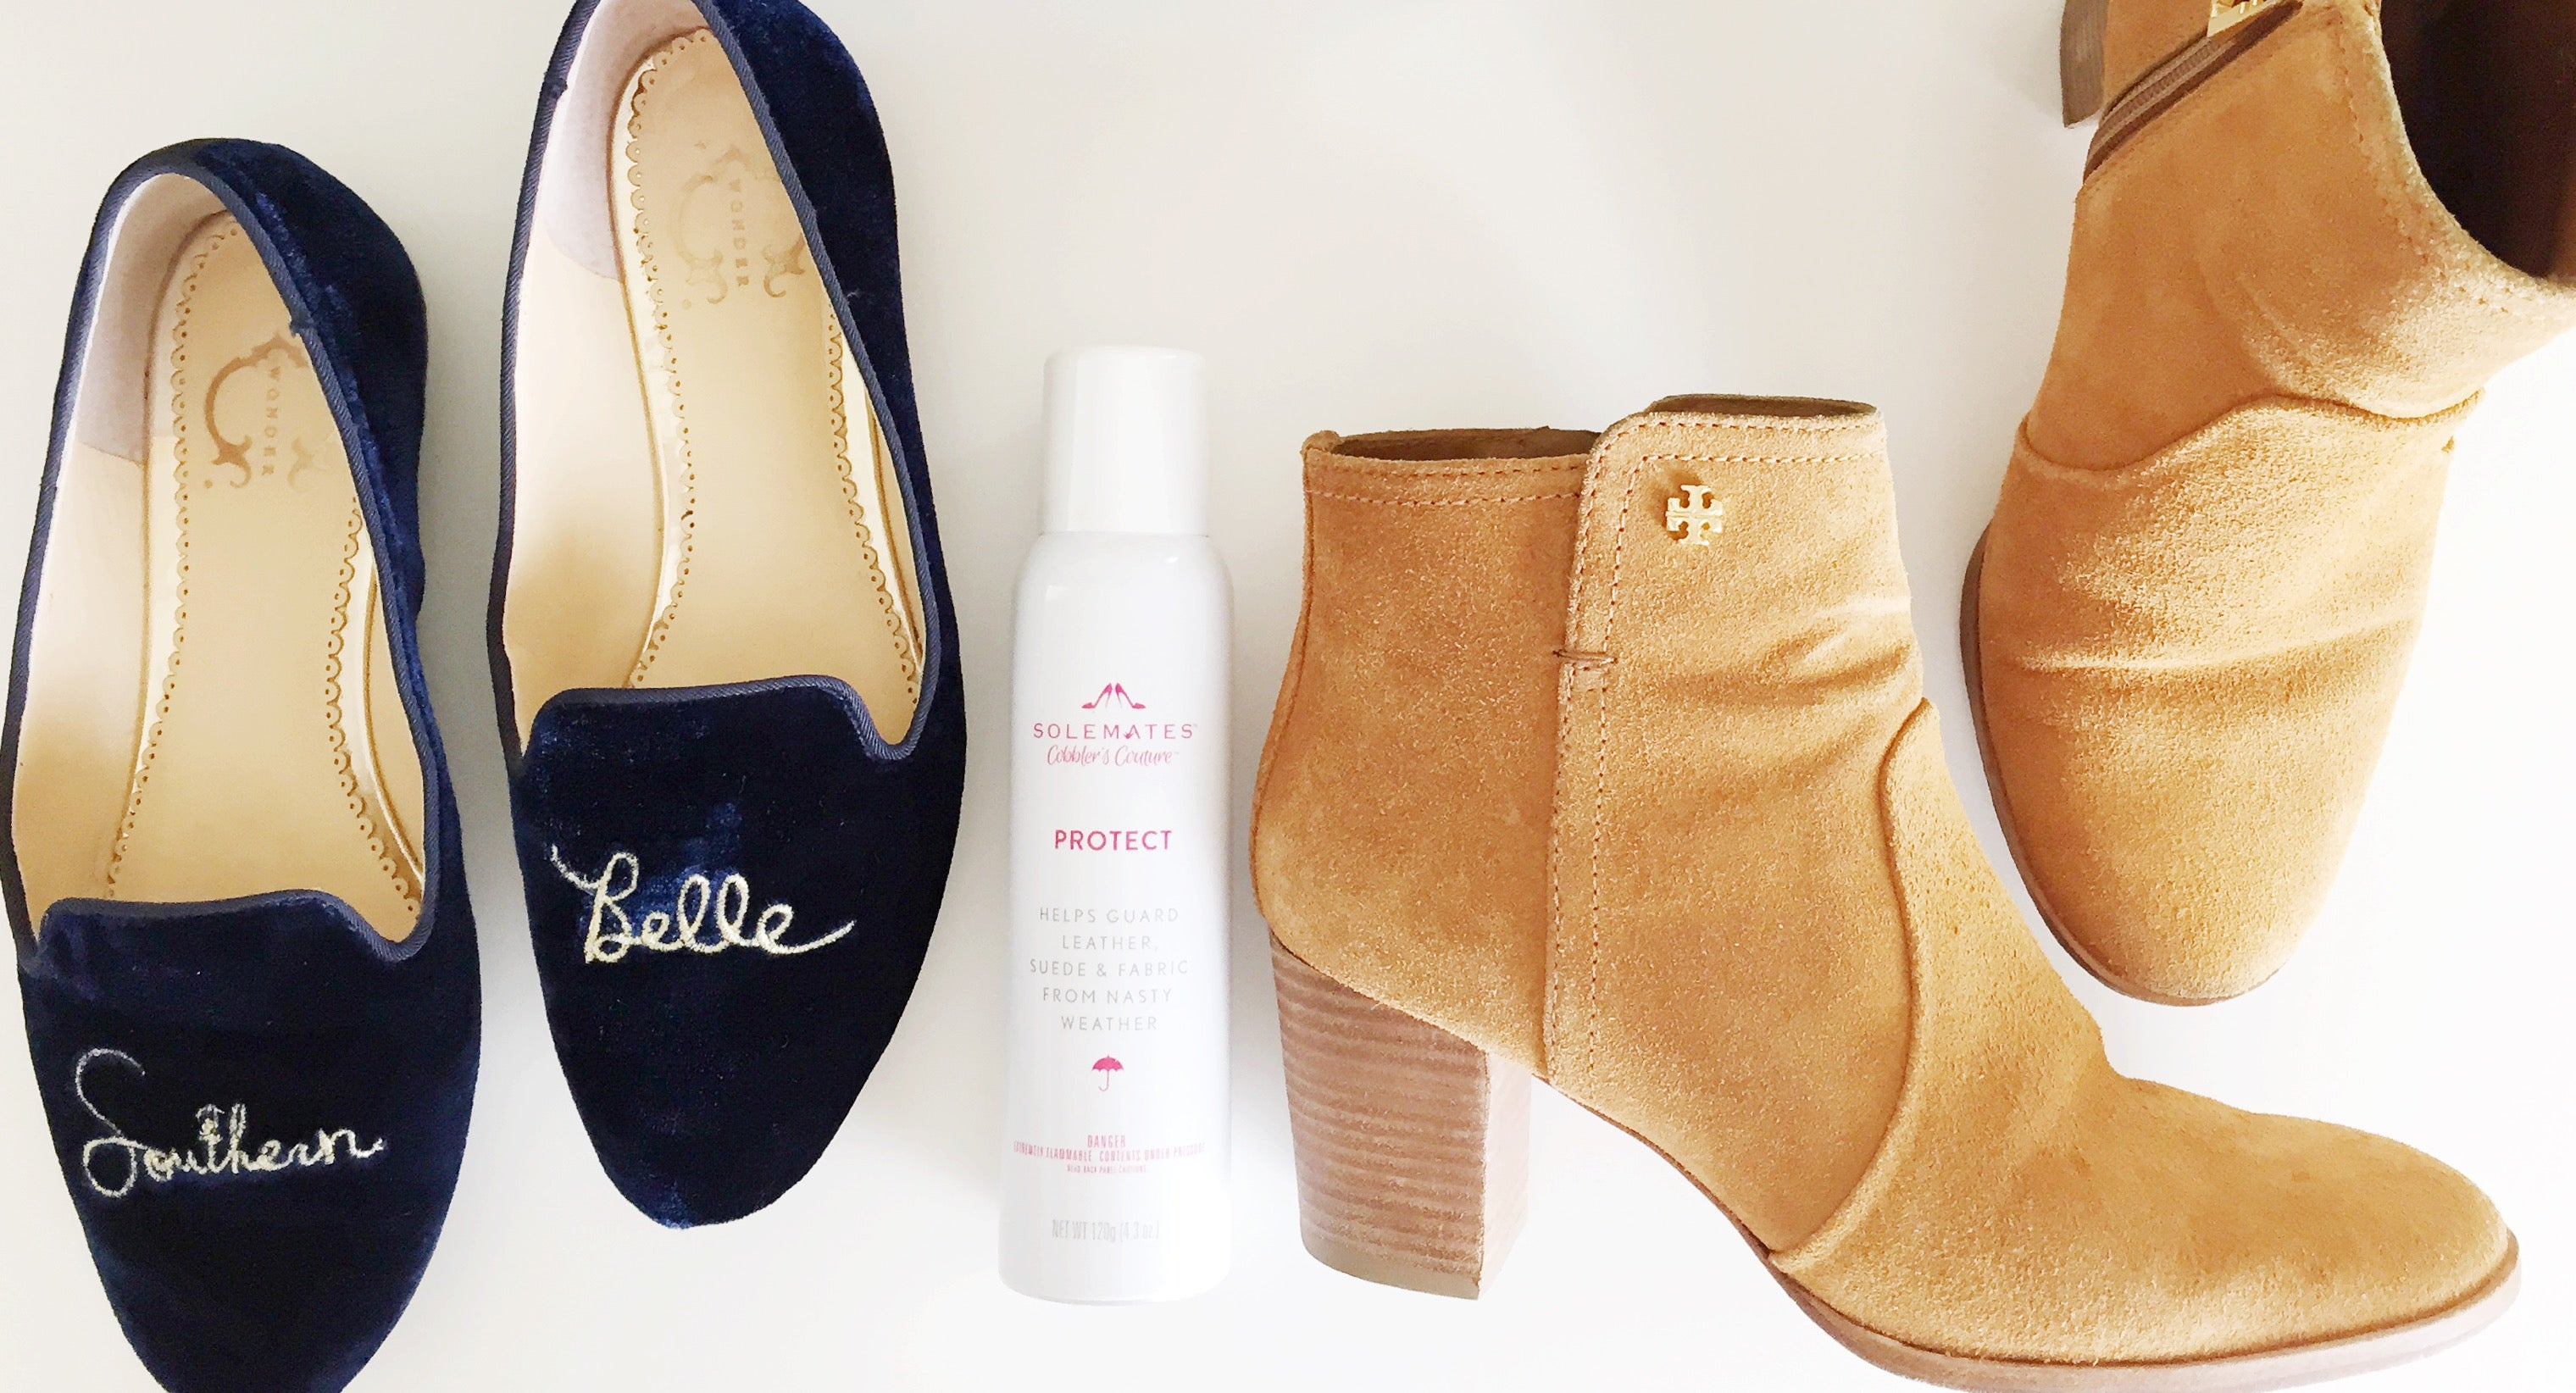 Southern Belle Slippers Protect and Boots